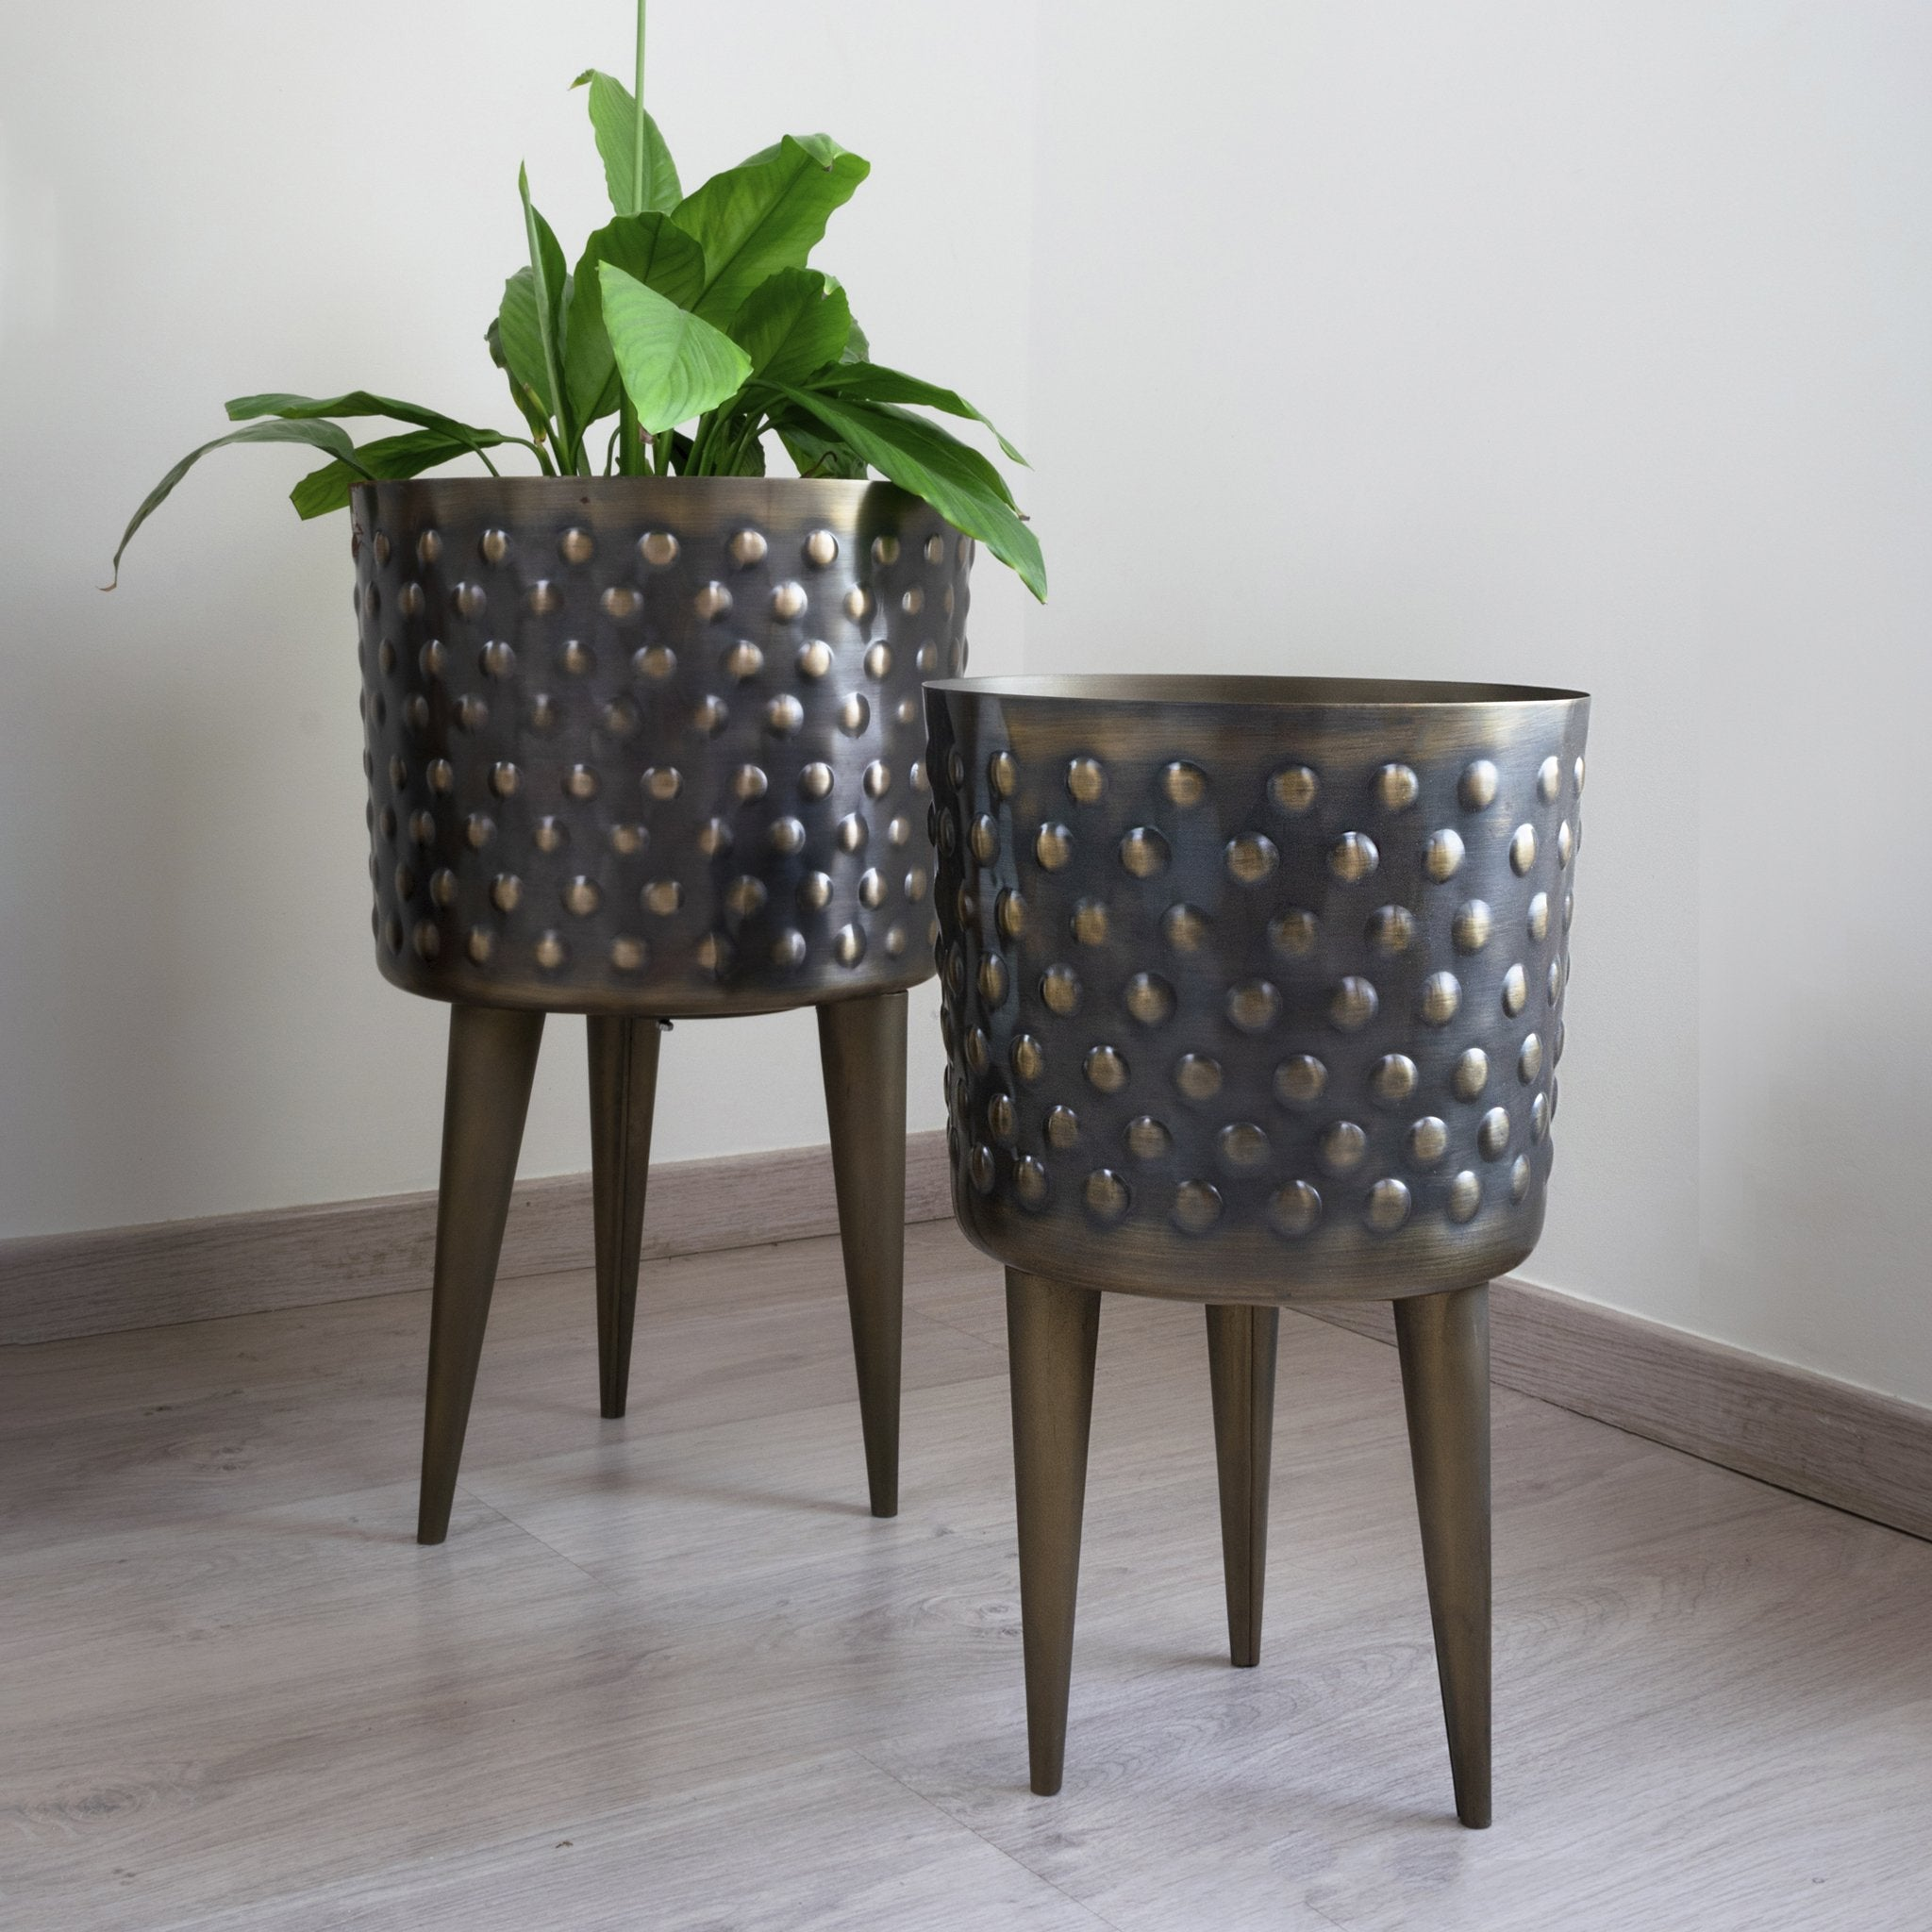 Set of two rustic gold hammered planters from fleck India, polka dot Planters